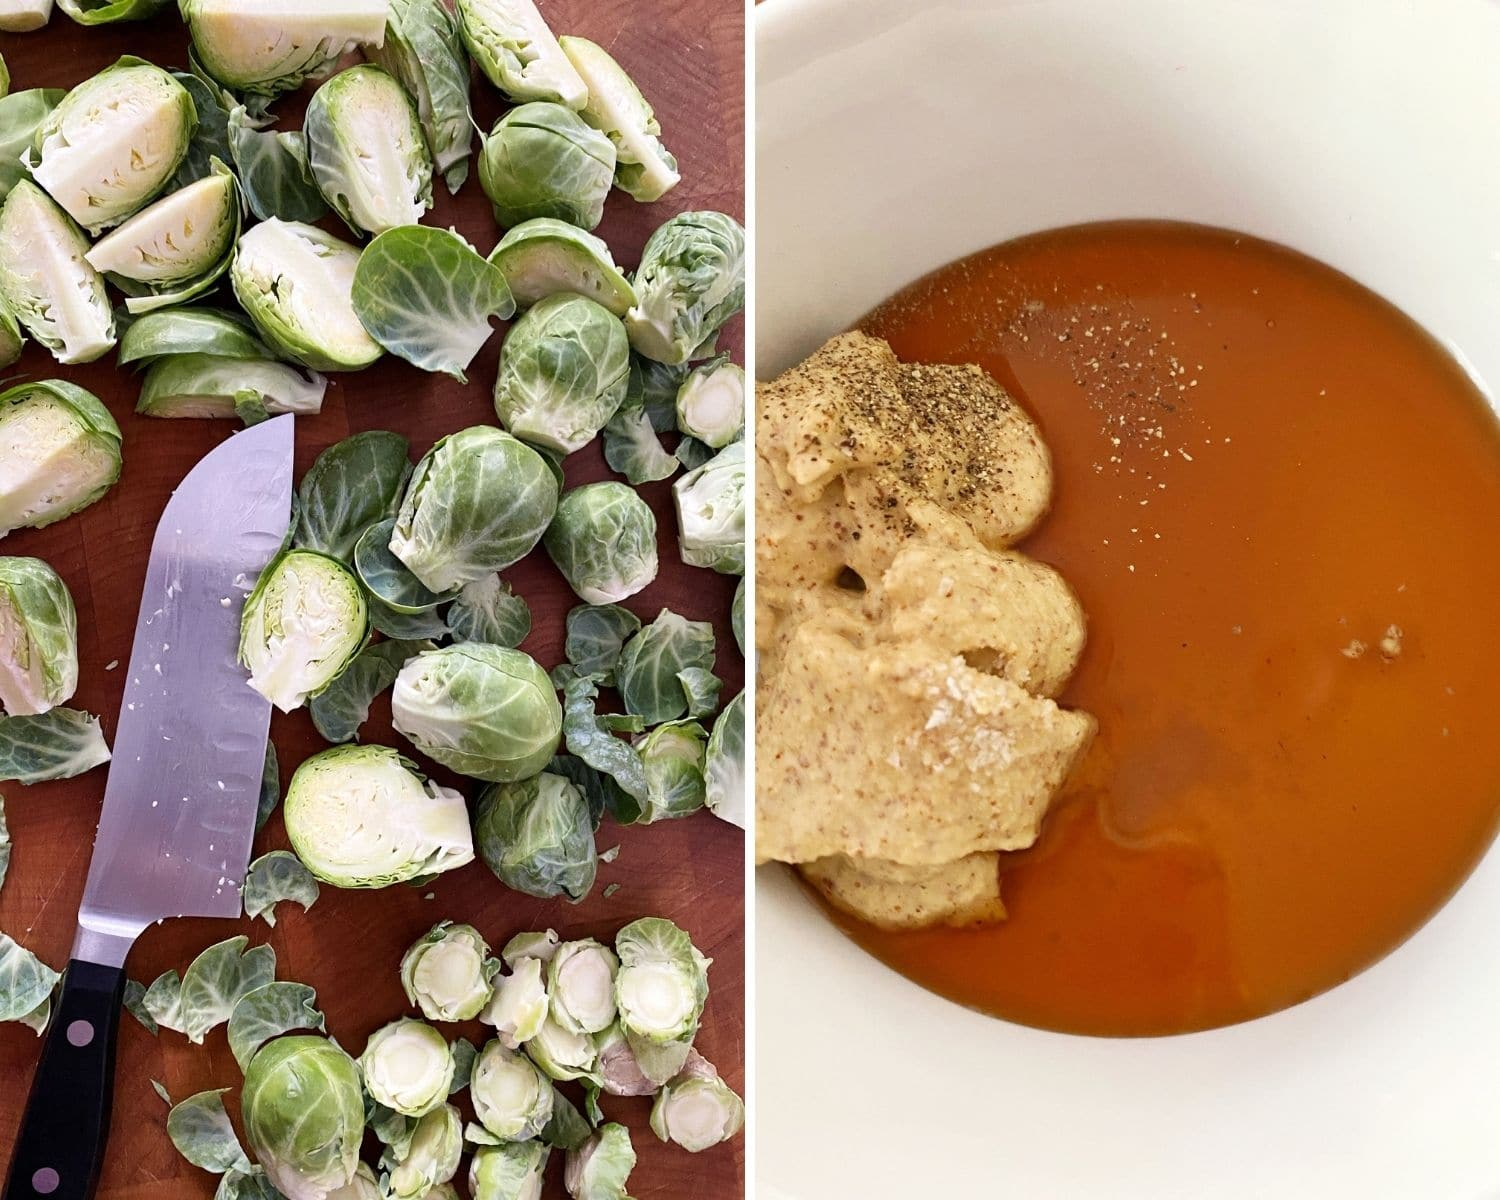 trimmed brussels sprouts and bowl of mustard and maple syrup